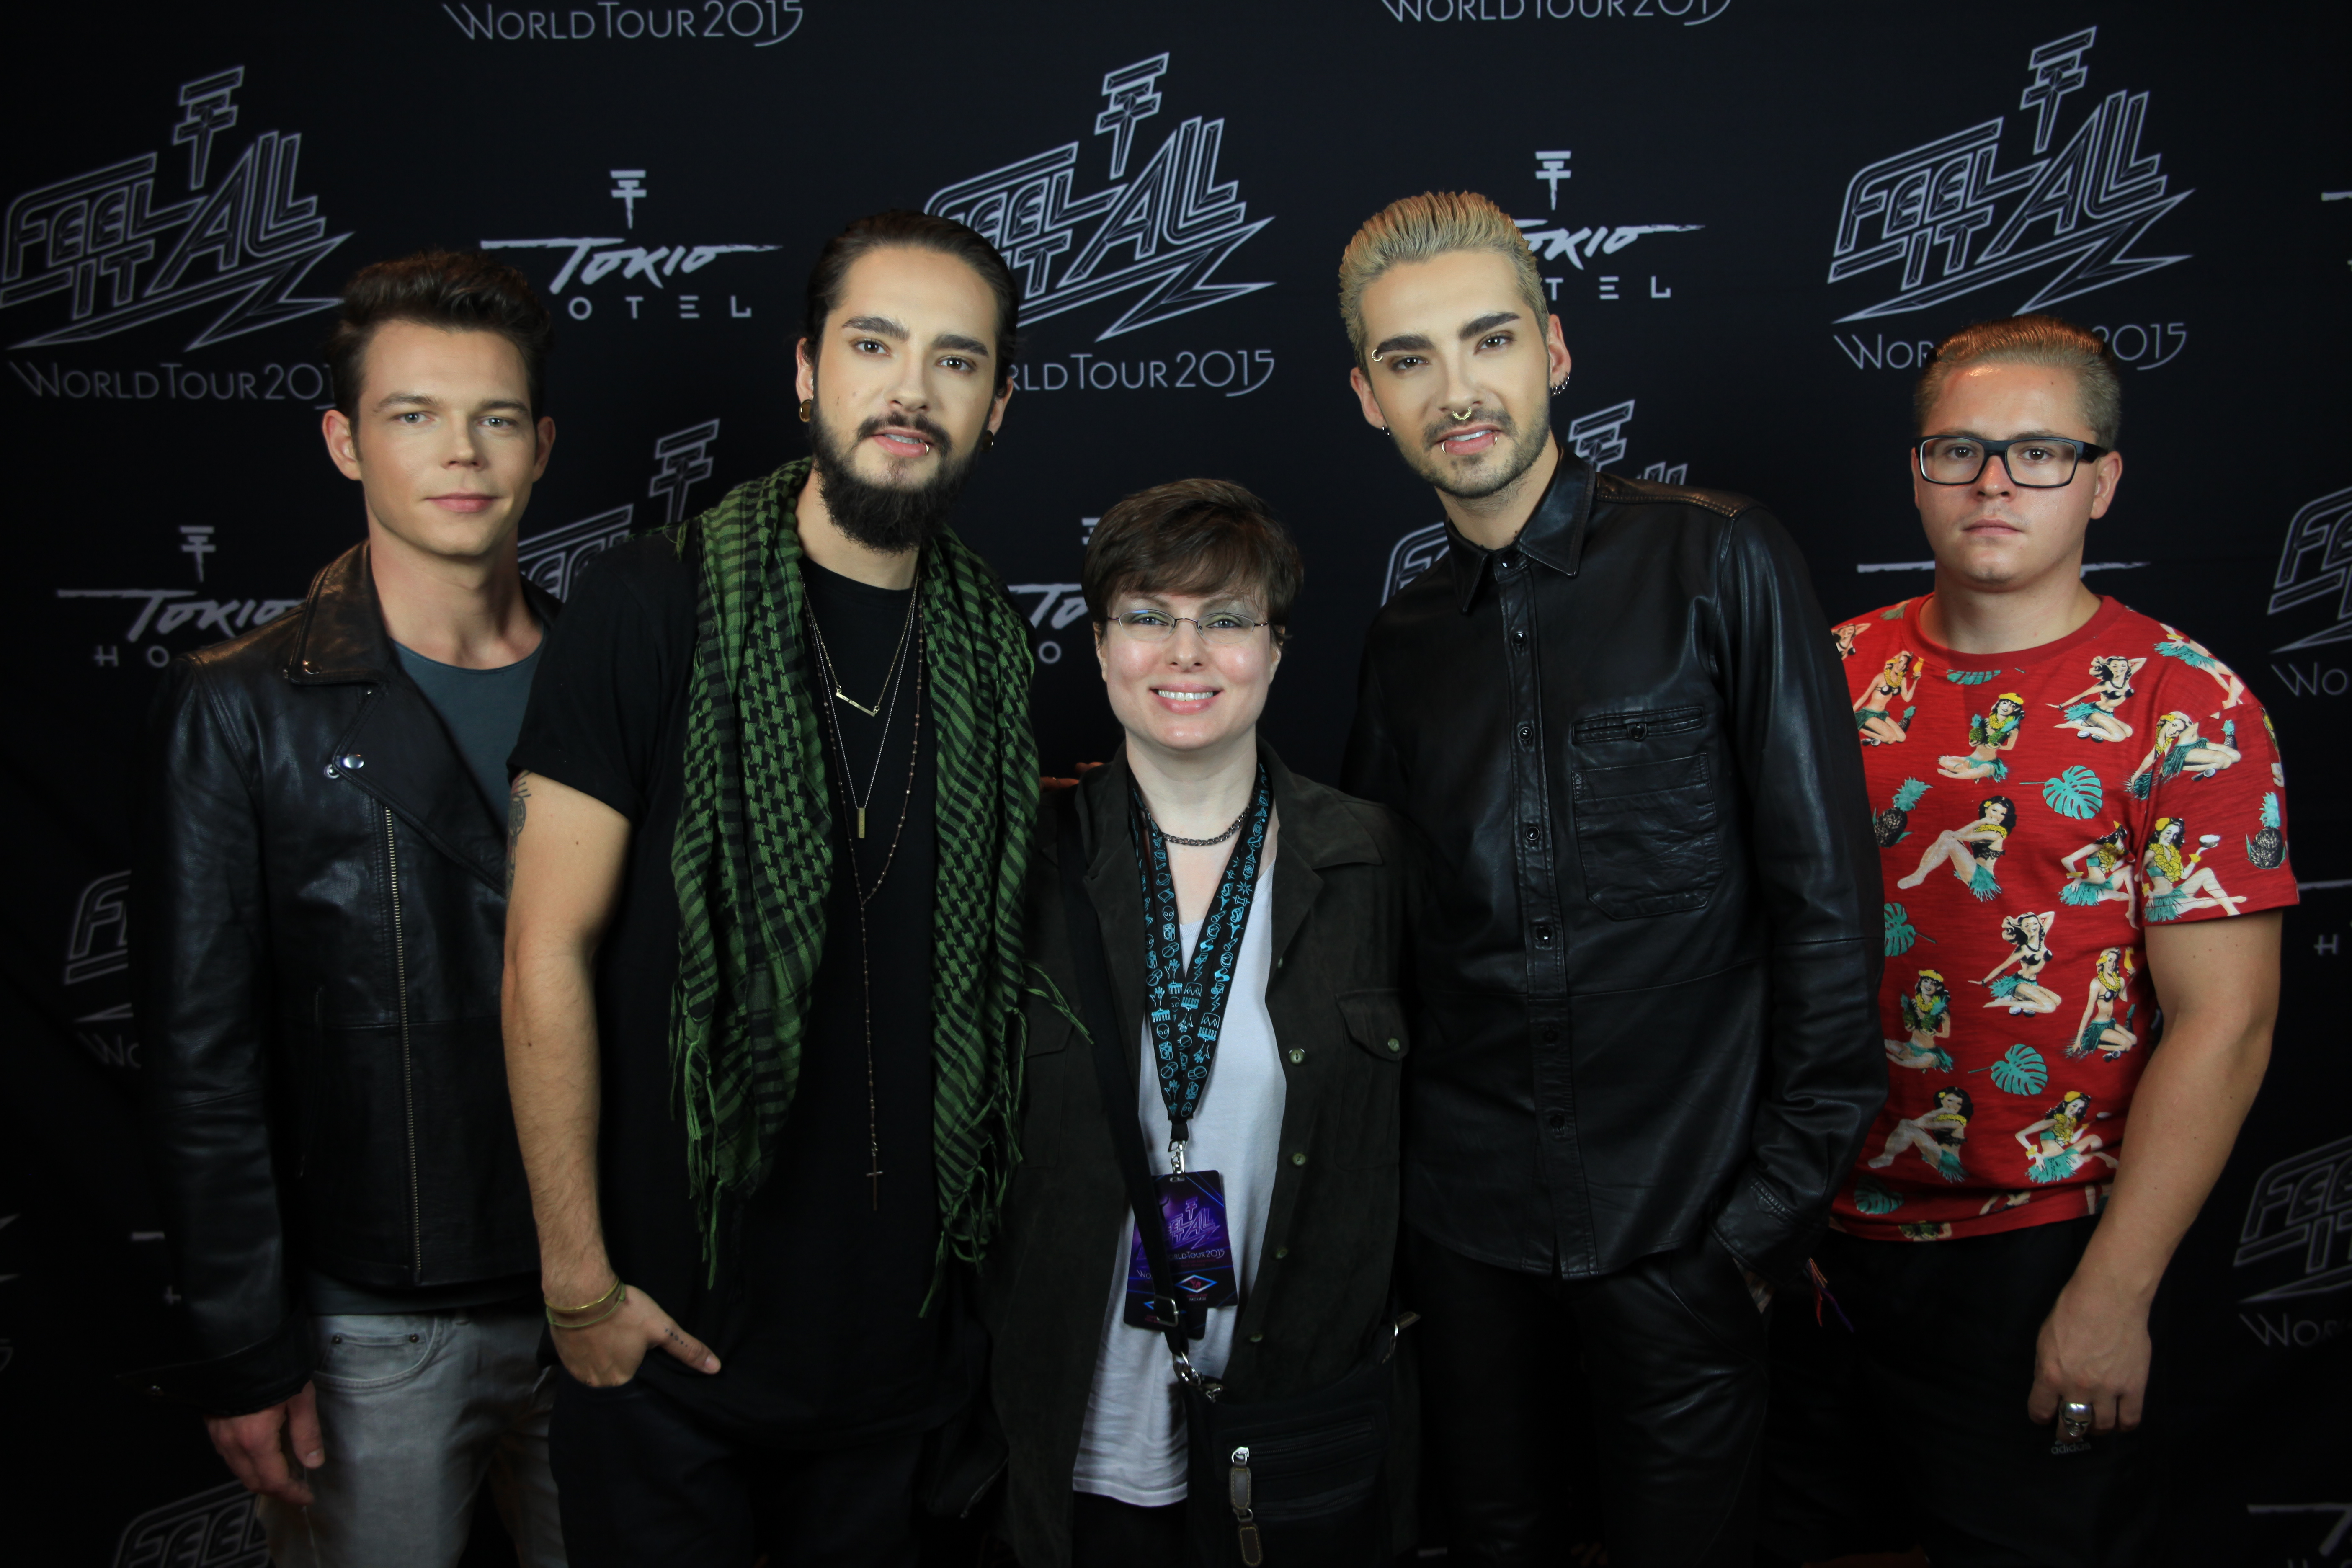 Meeting Tokio Hotel Cleveland Ohio House of Blues August 9